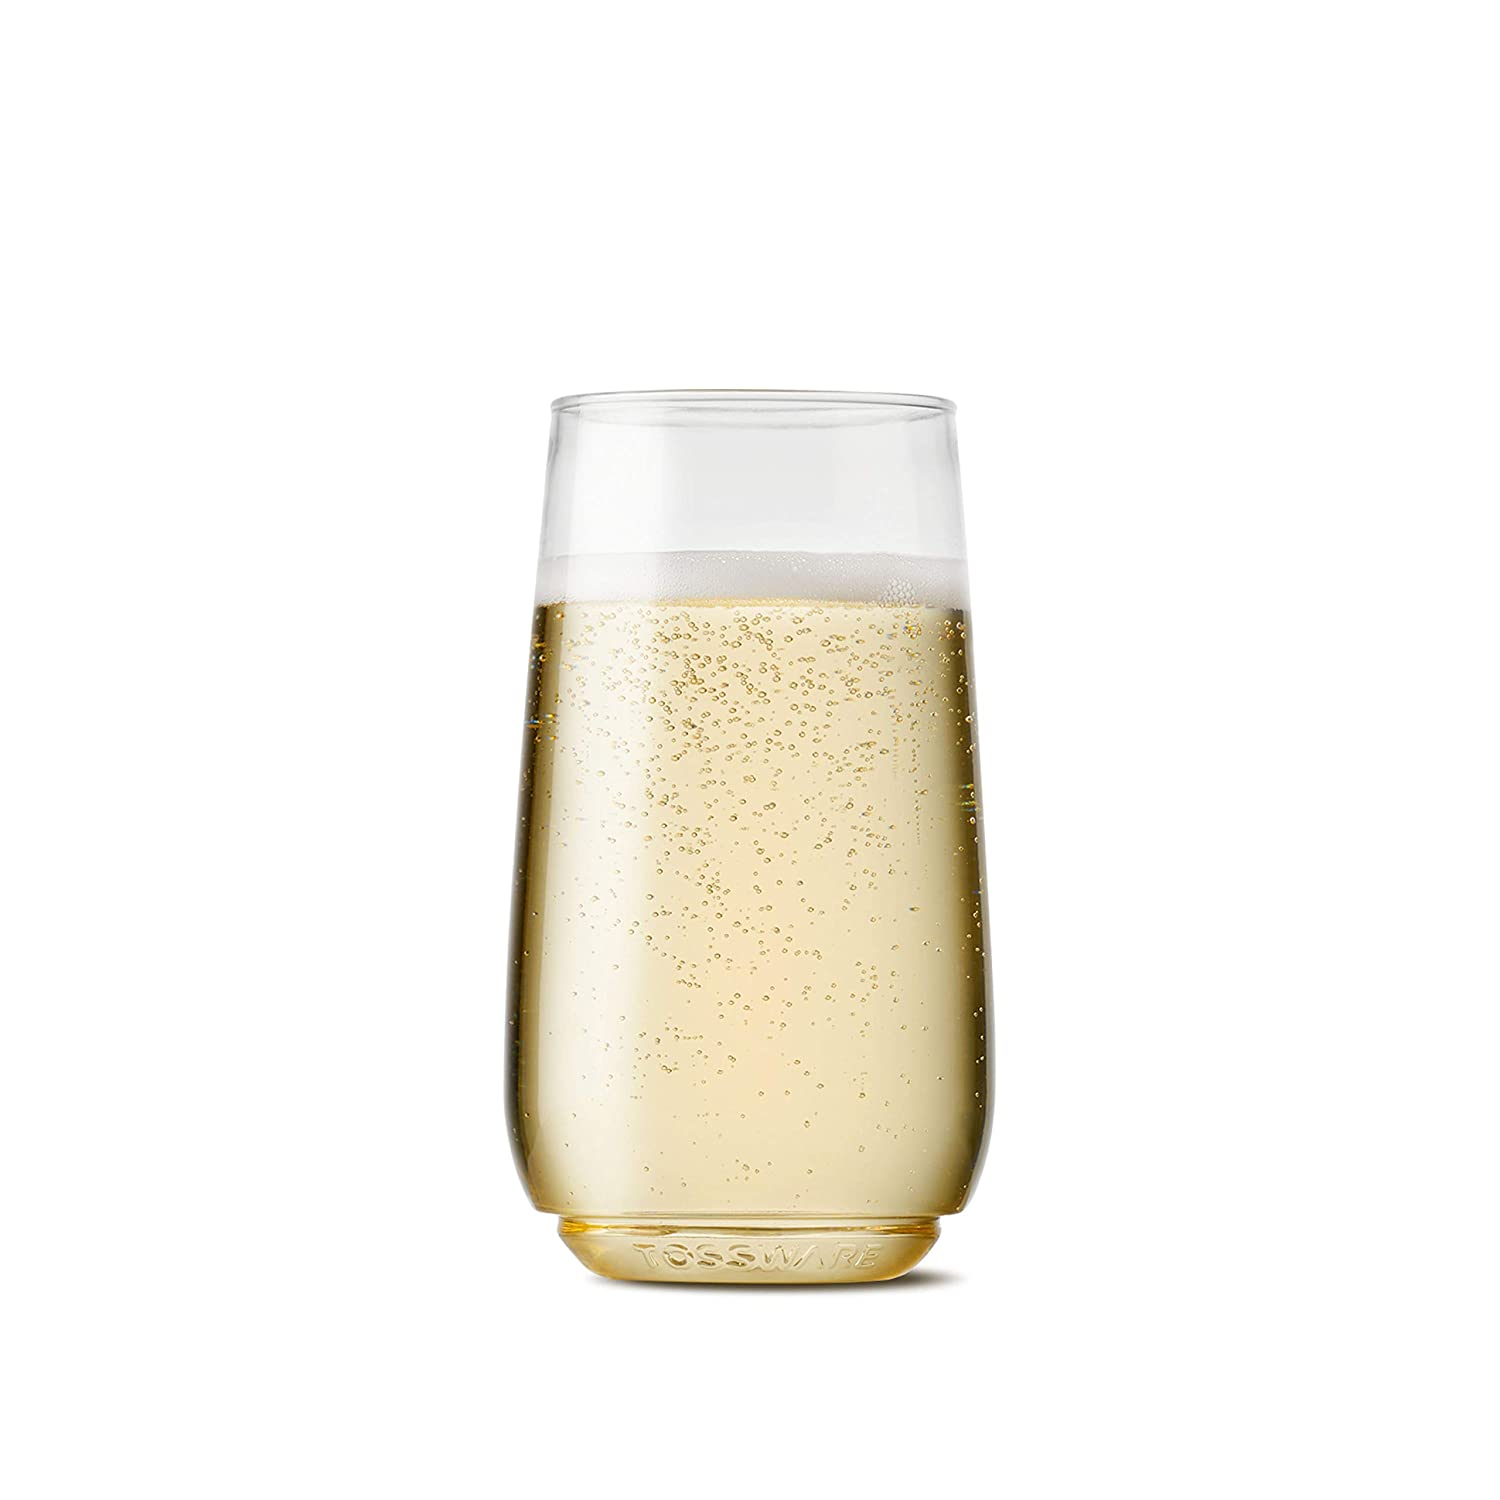 TOSSWARE 6oz Flute Jr - recyclable champagne plastic cup - SET OF 48 - stemless, shatterproof and BPA-free flute glasses